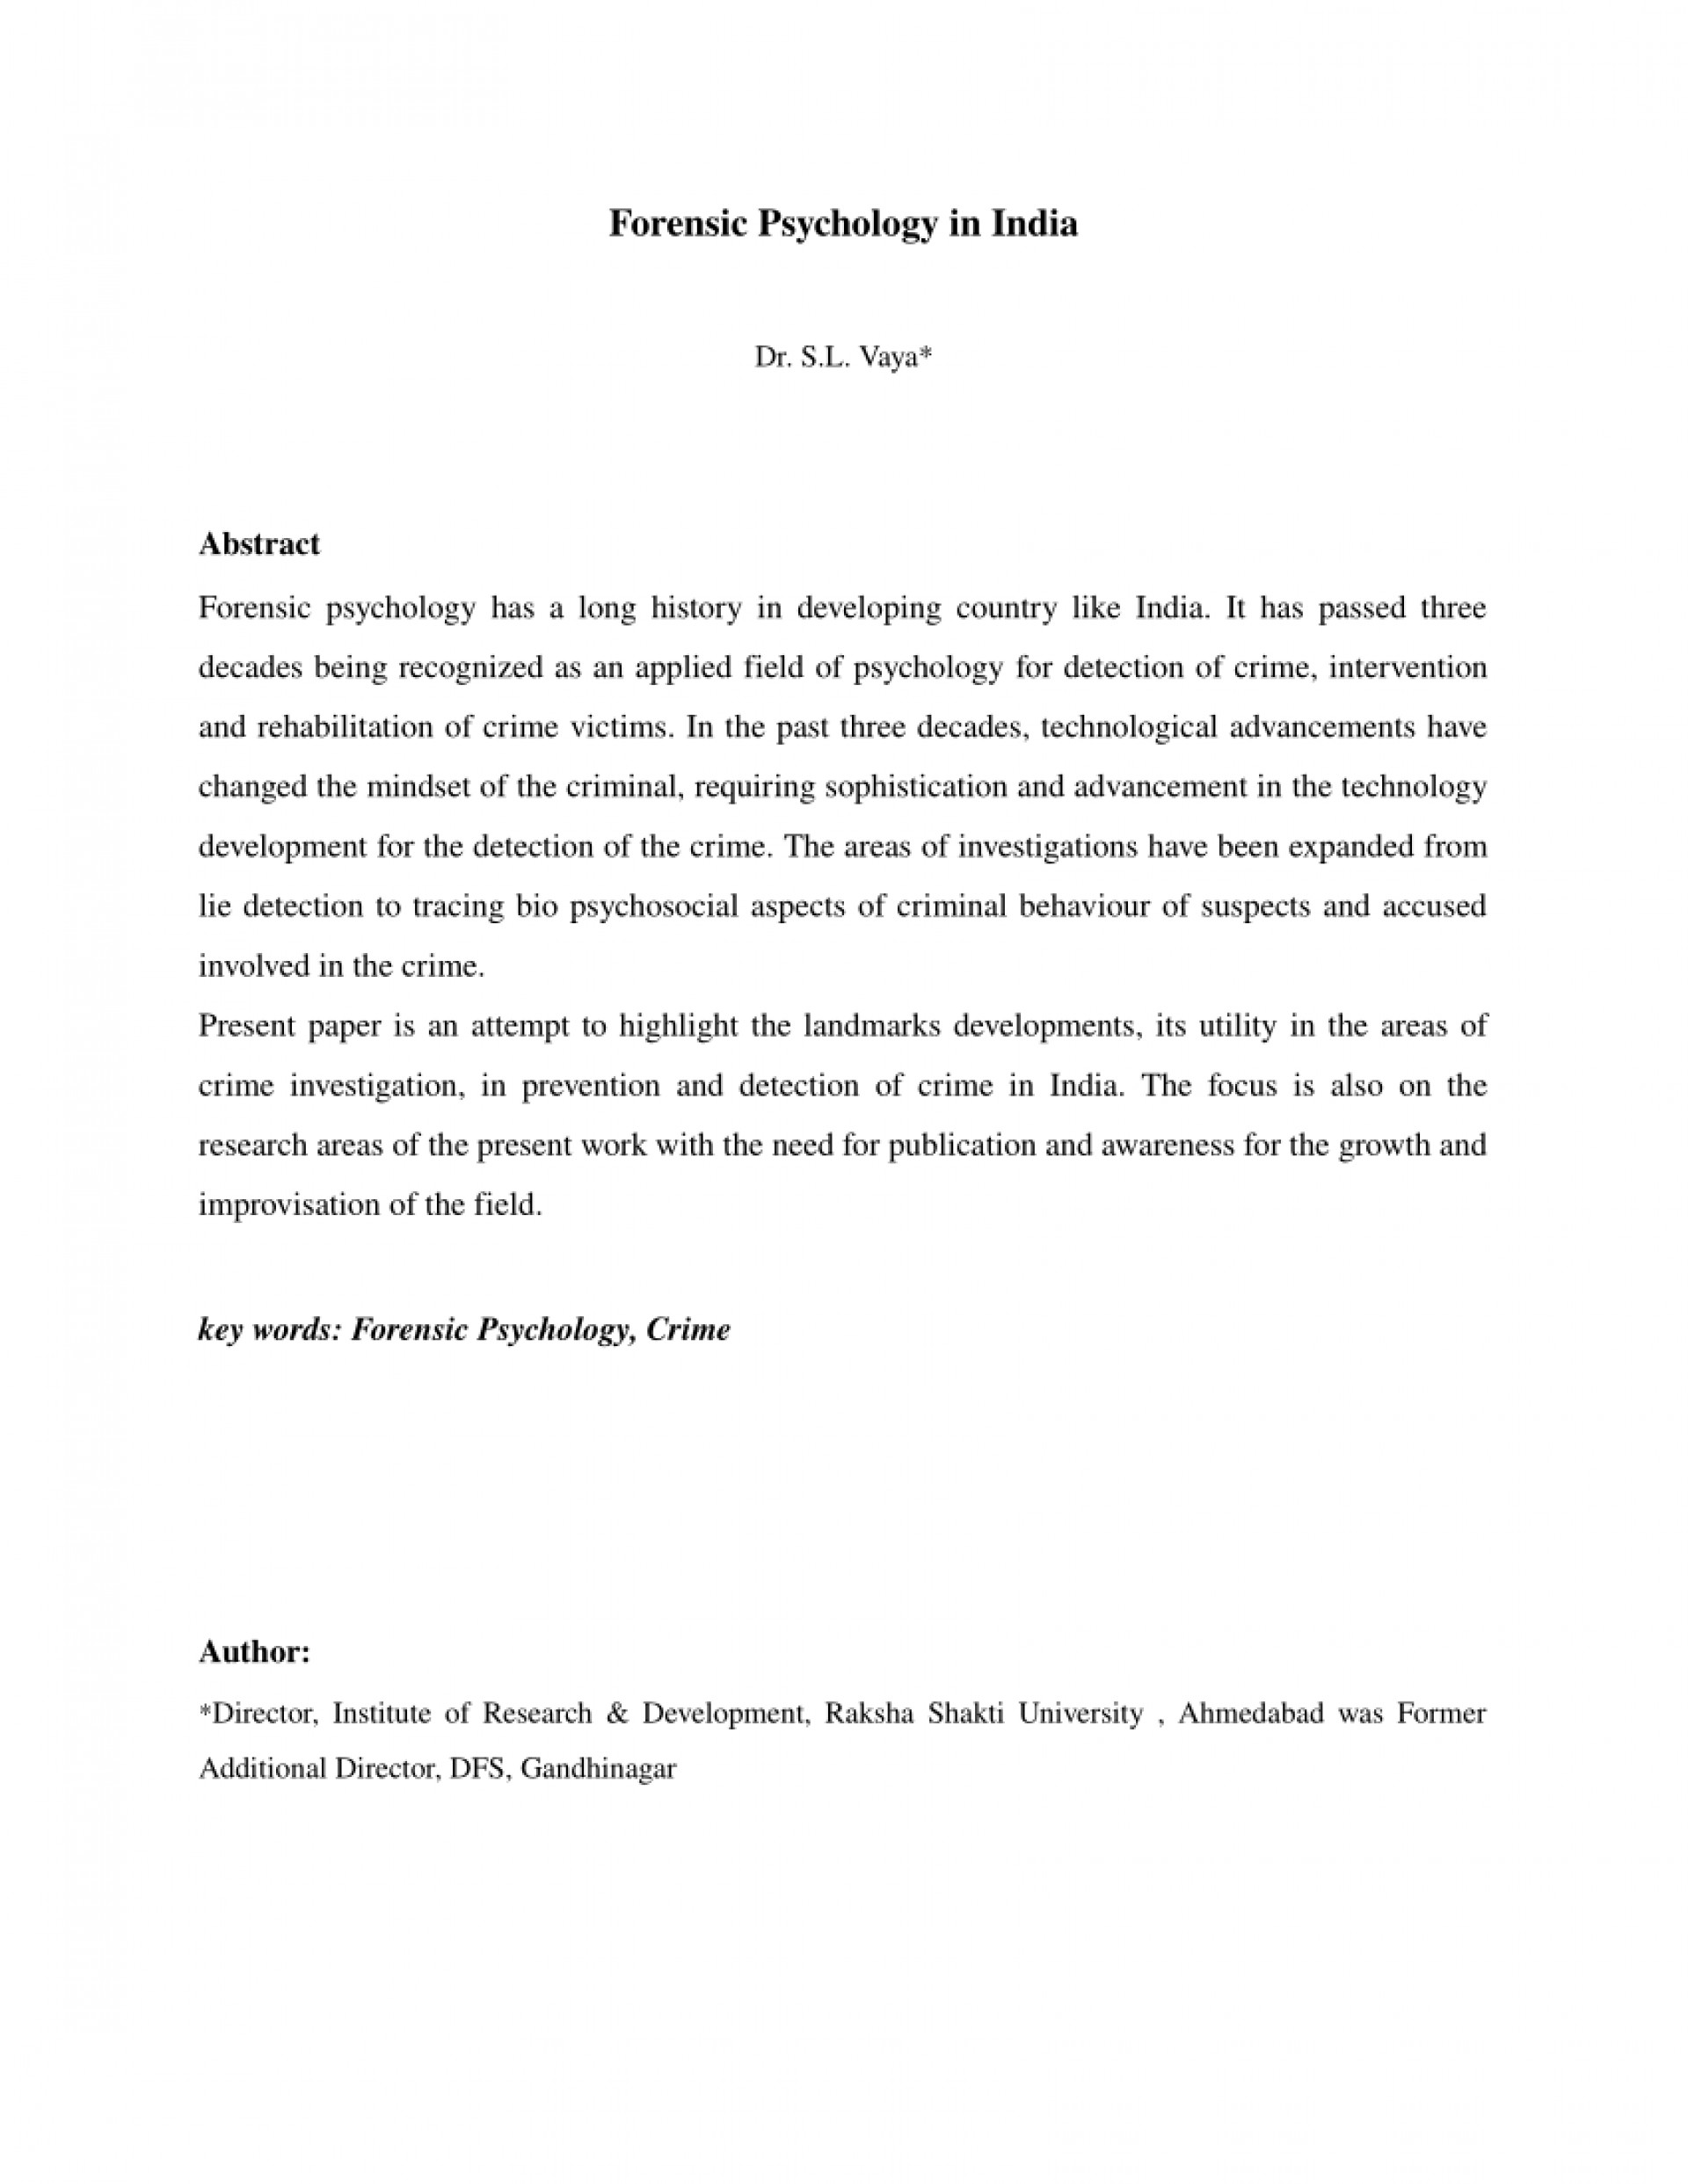 010 Largepreview Forensic Psychology Topics For Research Unique Paper 1920